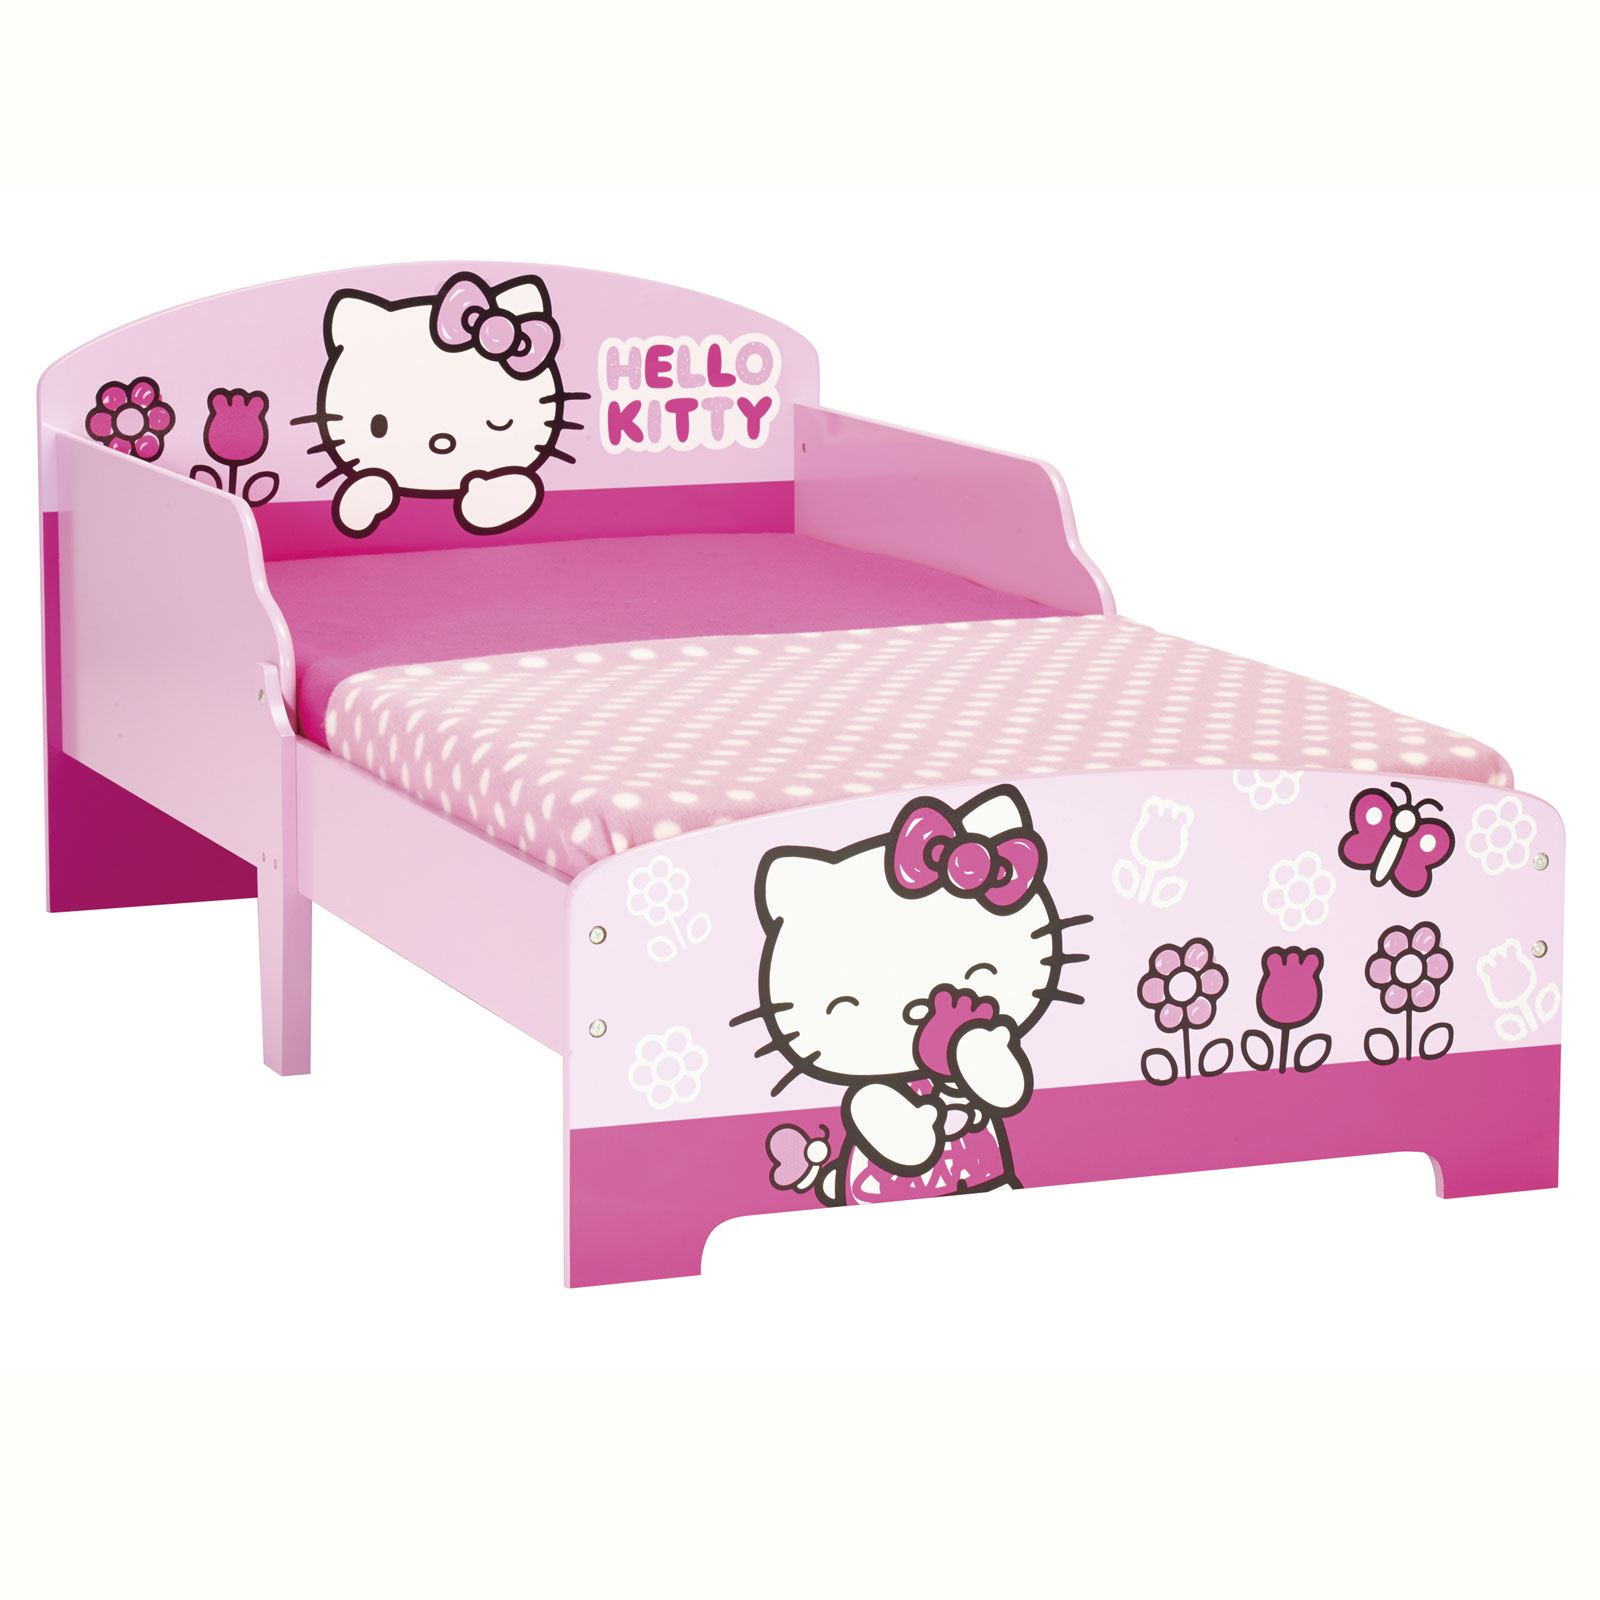 KIDS TODDLER JUNIOR CHARACTER BEDS MATTRESS OPTION AVAILABLE